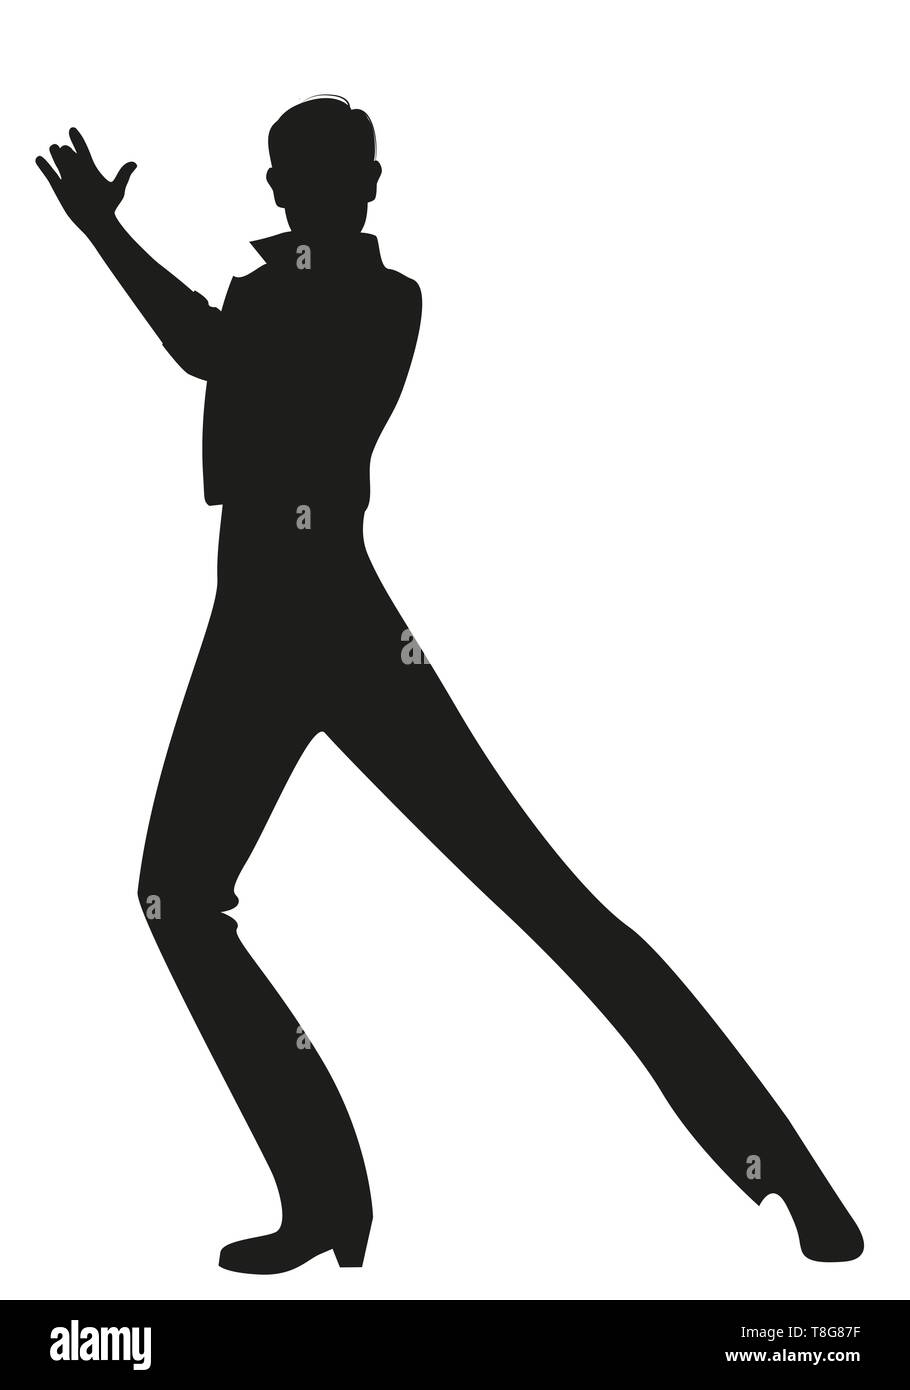 Silhouette of Spanish Flamenco dancer man dancing isolated on white background - Stock Image